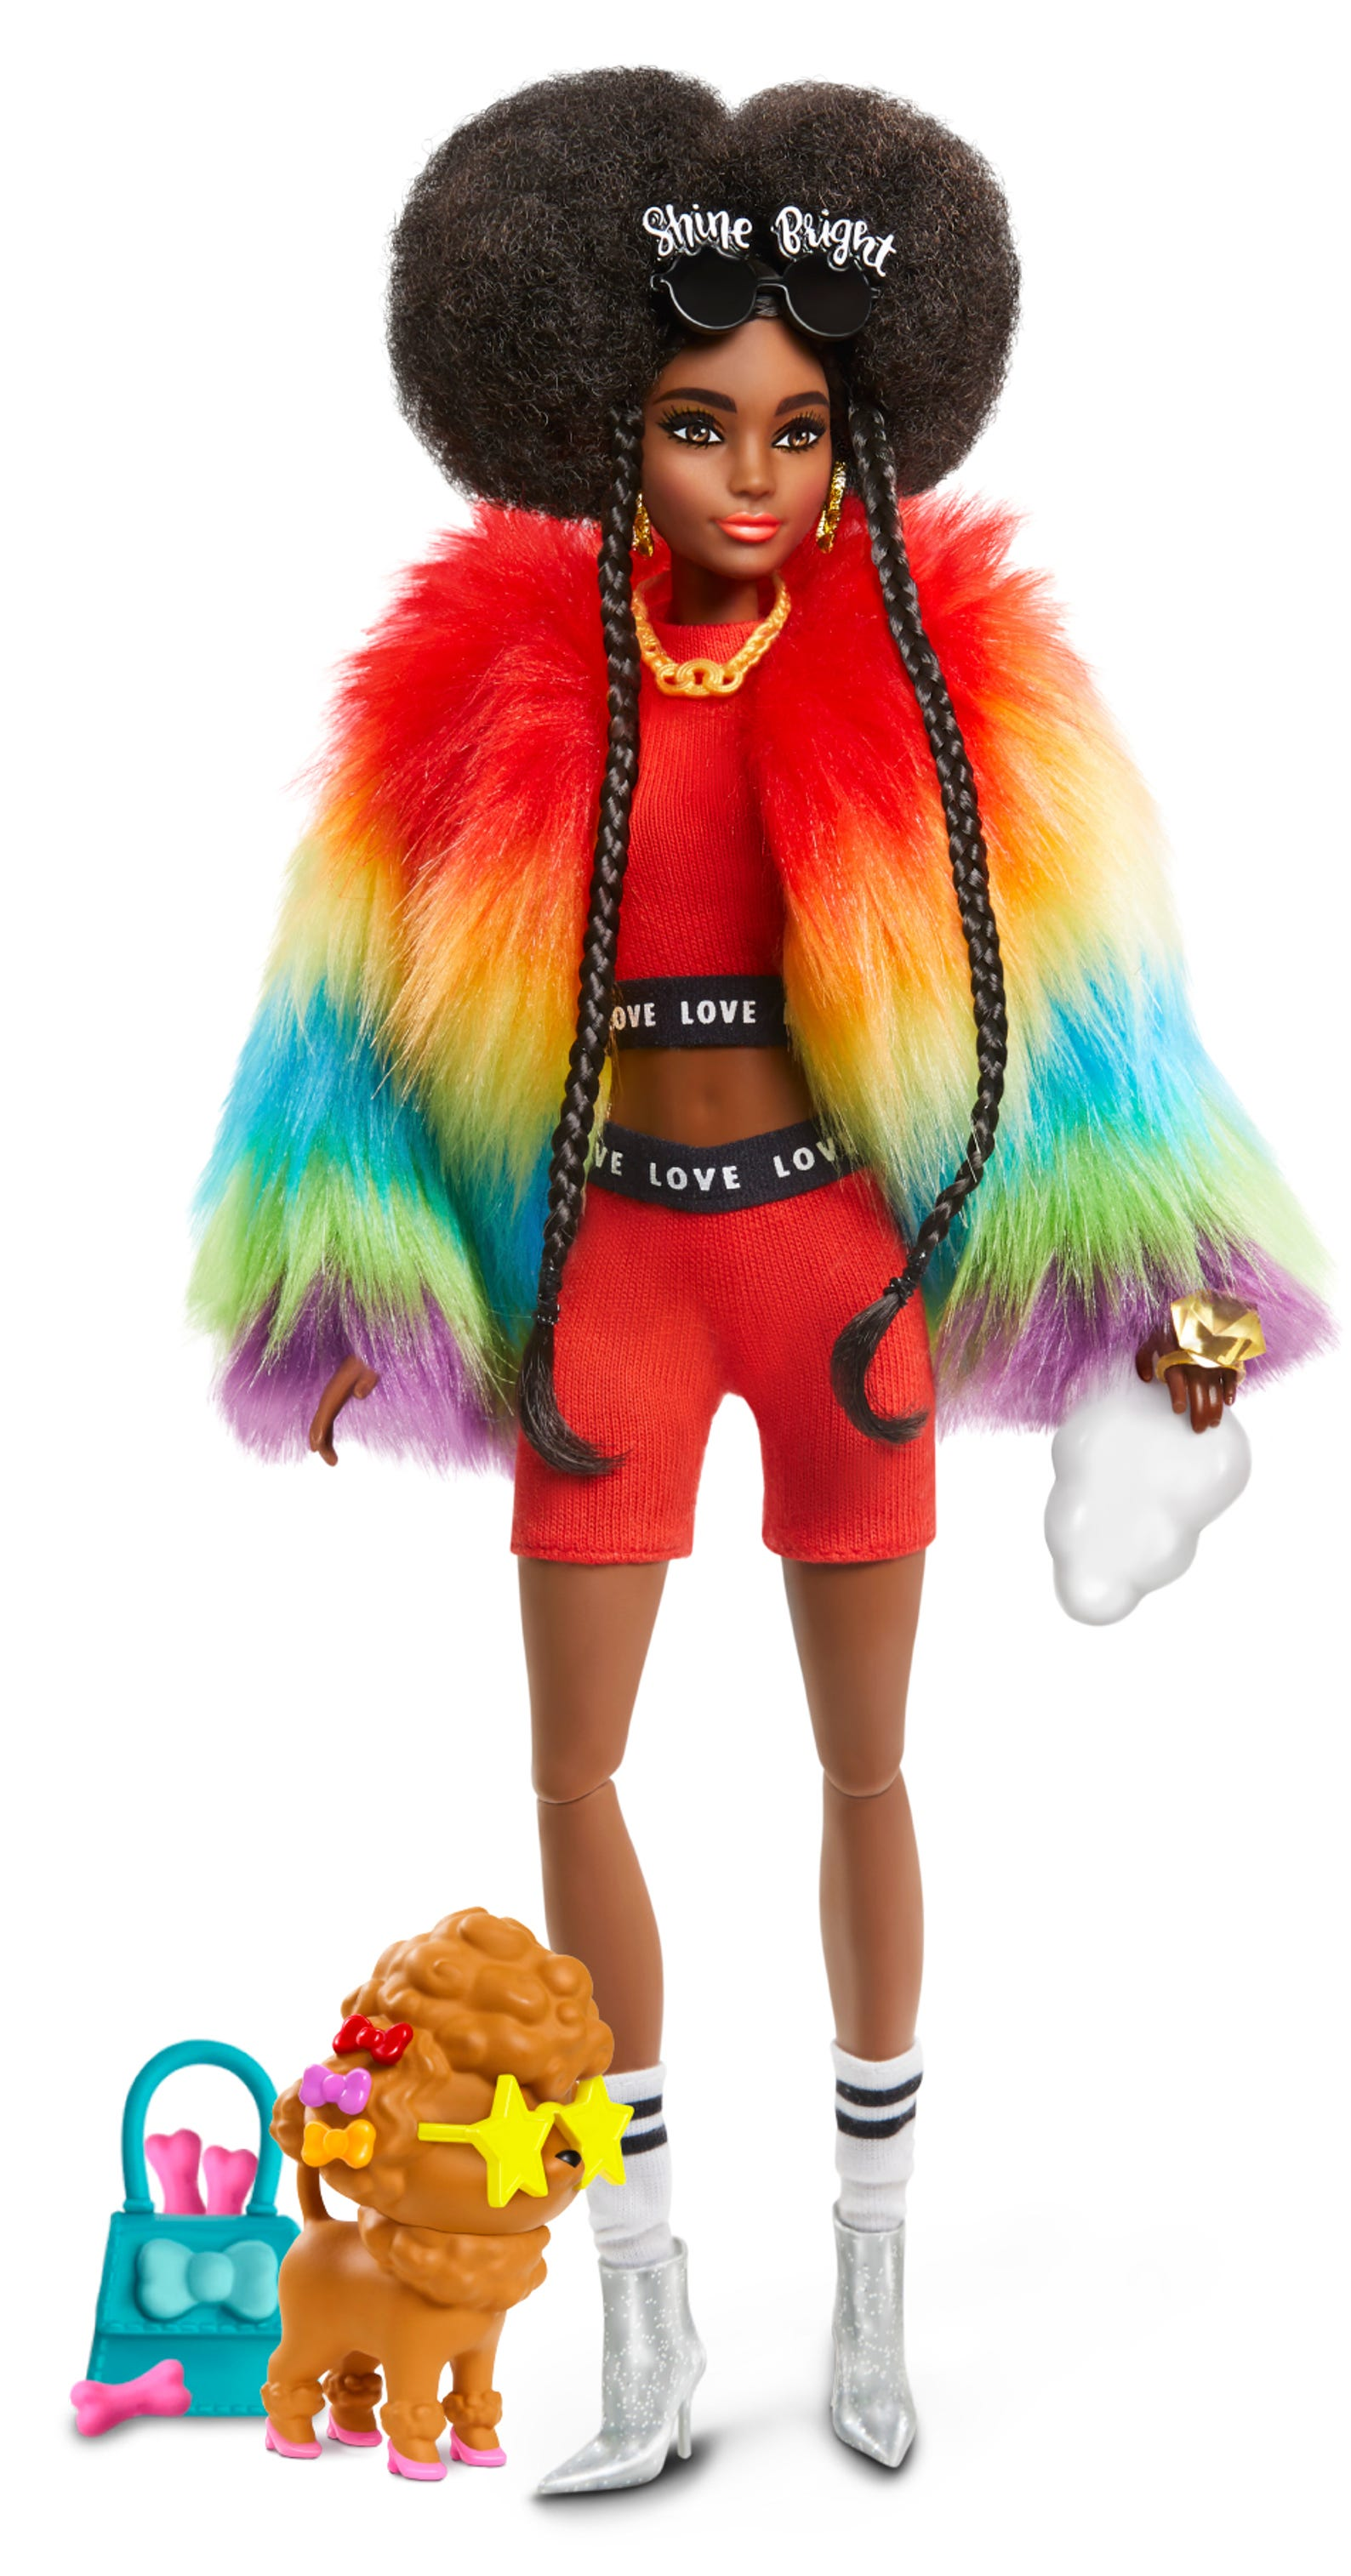 With Afro puffs and braided hair details, this Barbie wears a rainbow fur coat with a matching athleisure red top and shorts set, glittered boots and socks. Her pet poodle wears puppy heels and has a puppy purse with treats.